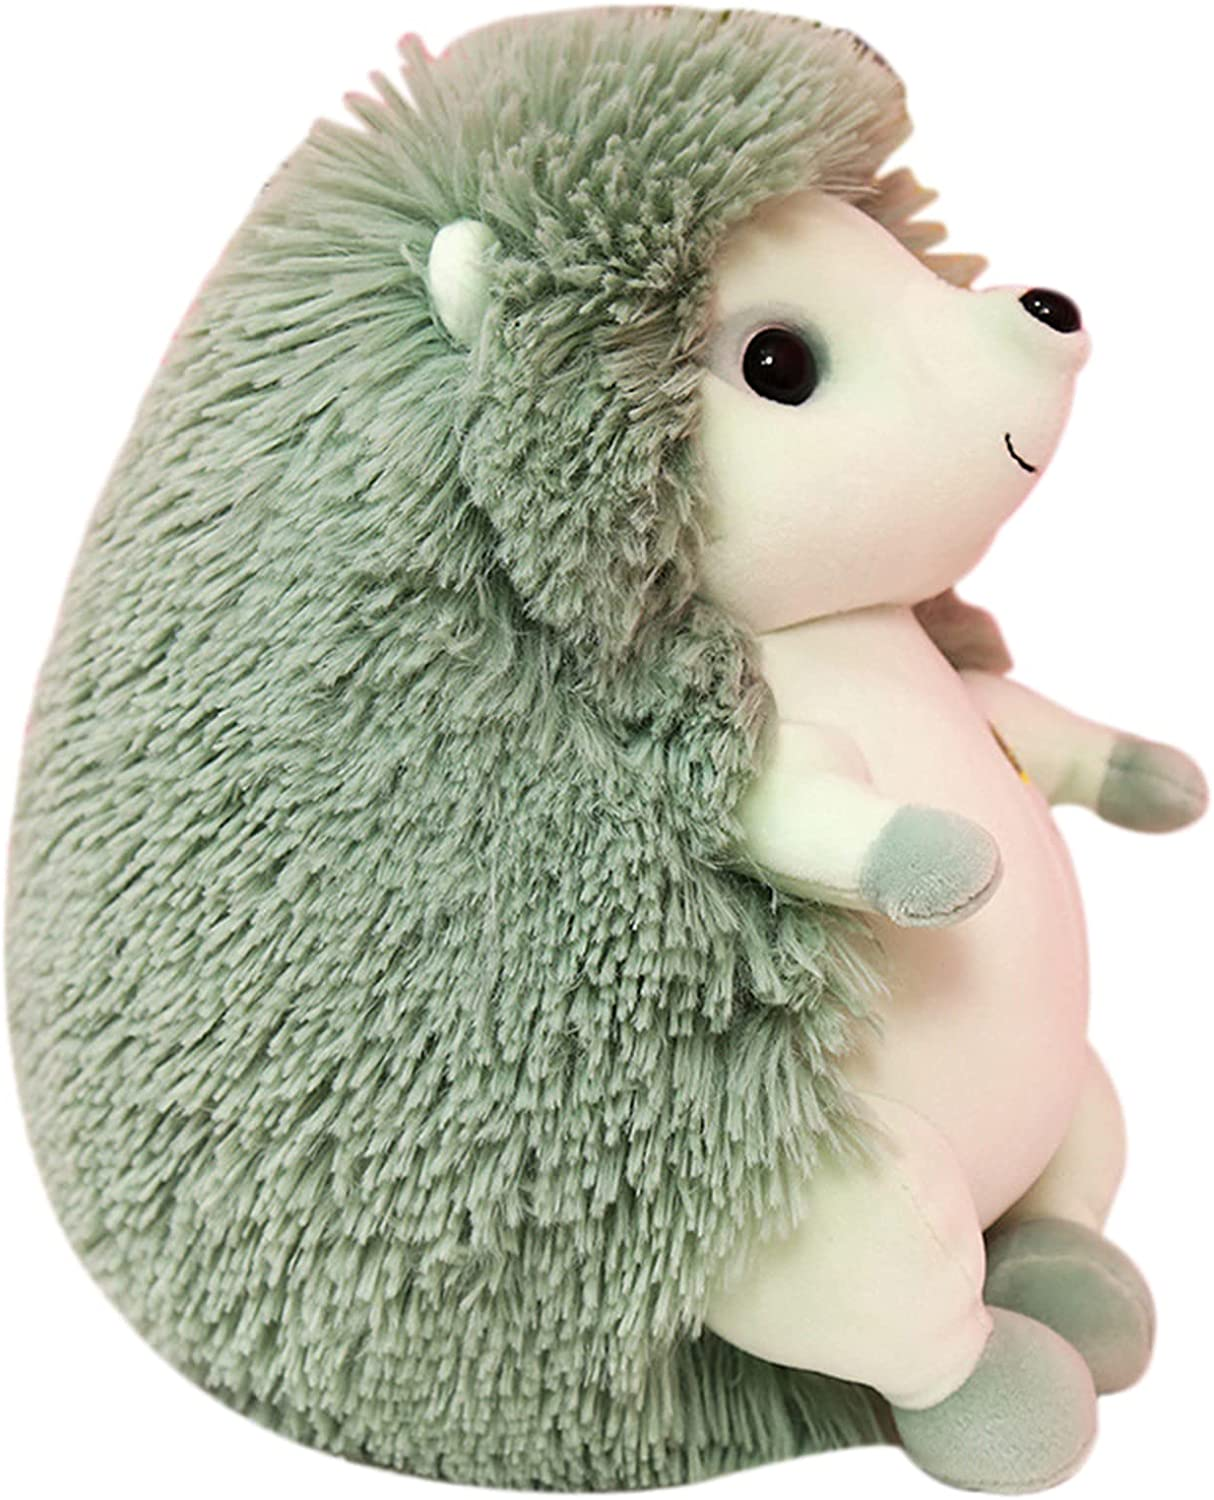 Plush Hedgehog Toys Cute Safety and trust Stuffed Special price for a limited time Toy Anima